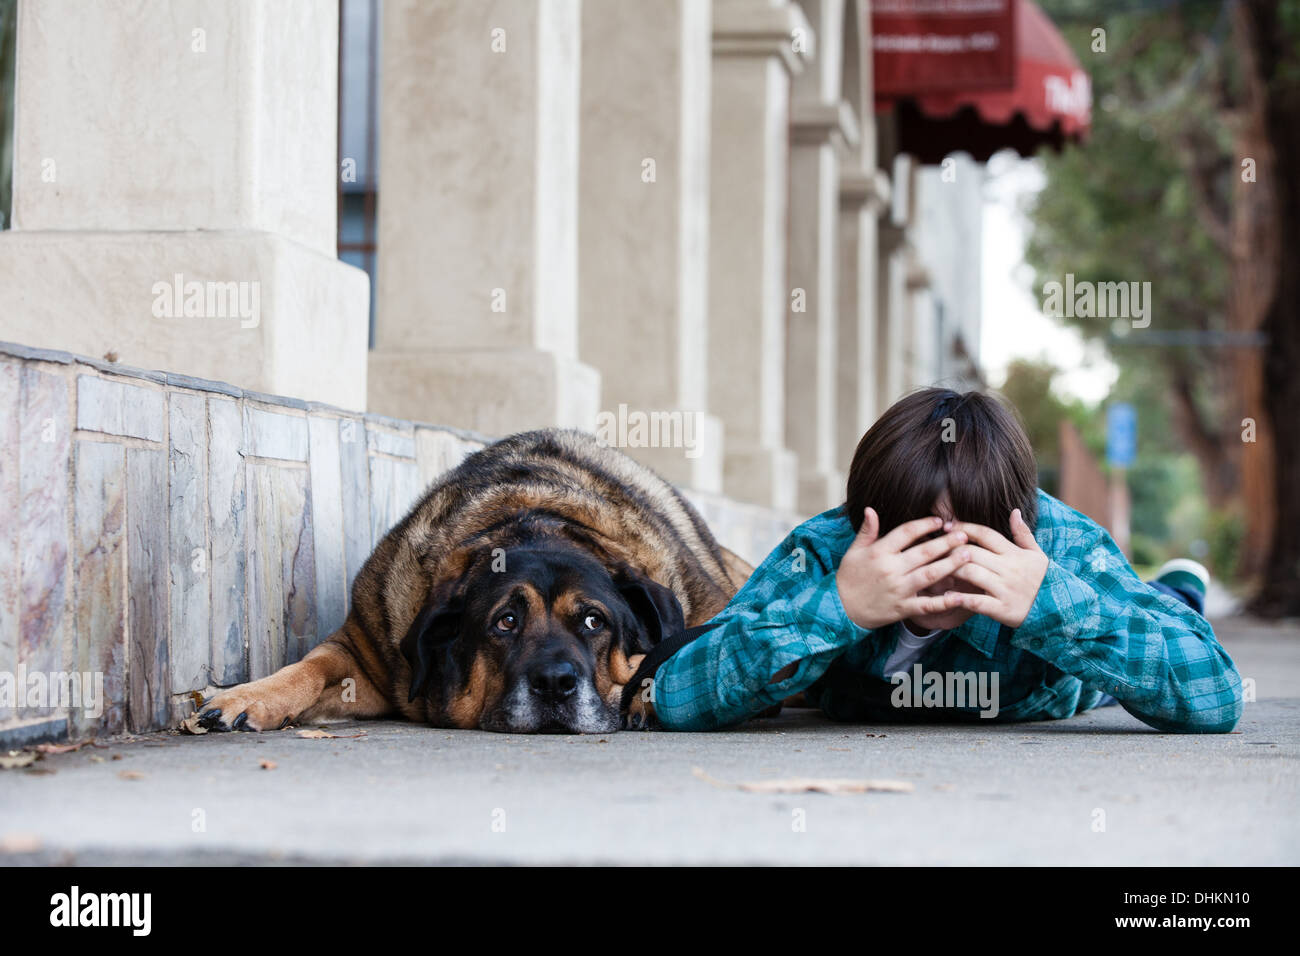 A 10 year old boy and his dog lying down on the sidewalk playing hide and seek - Stock Image